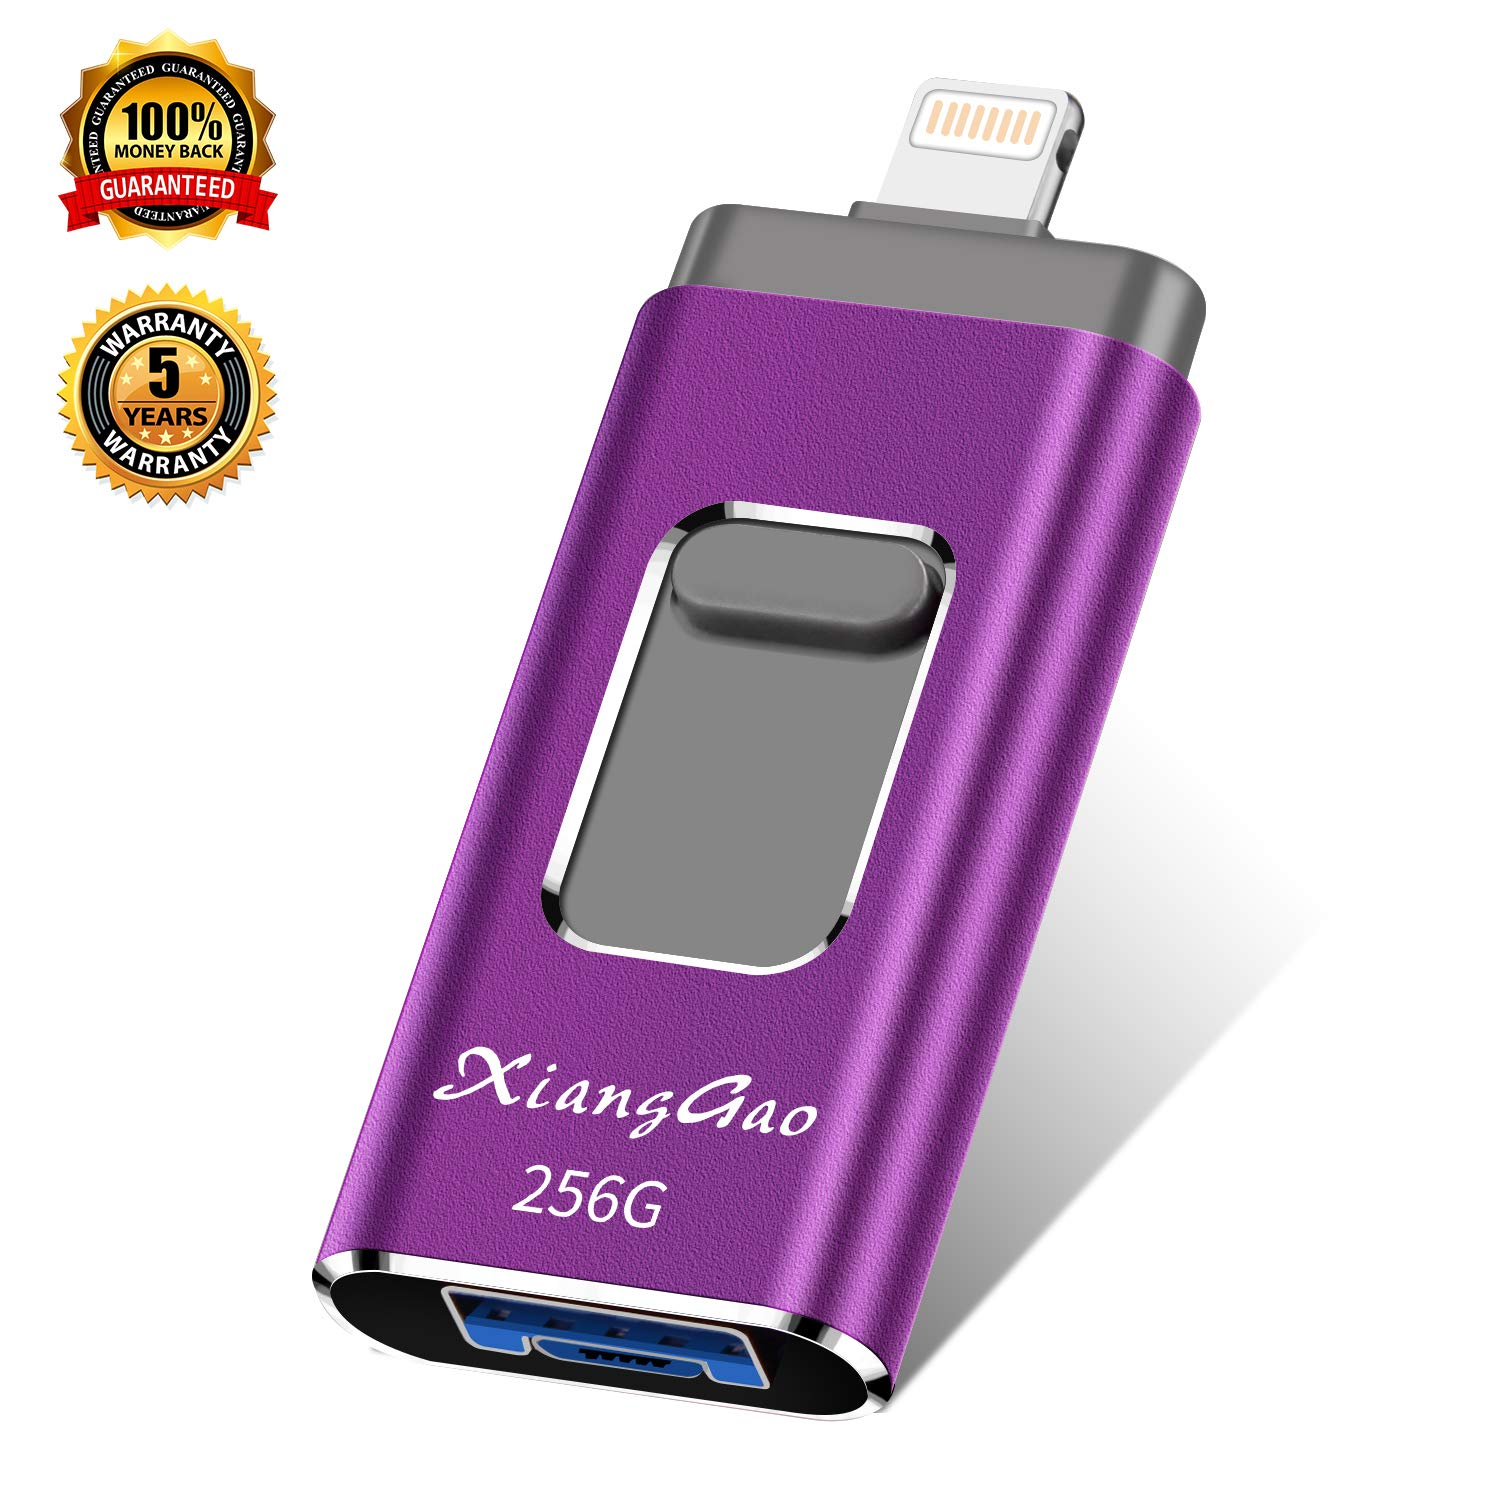 iOS Flash Drive for iPhone Photo Stick 256GB XiangGao Memory Stick USB 3.0 Flash Drive Lightning Thumb Drive for iPhone iPad Android and Computers (purple-256gb)